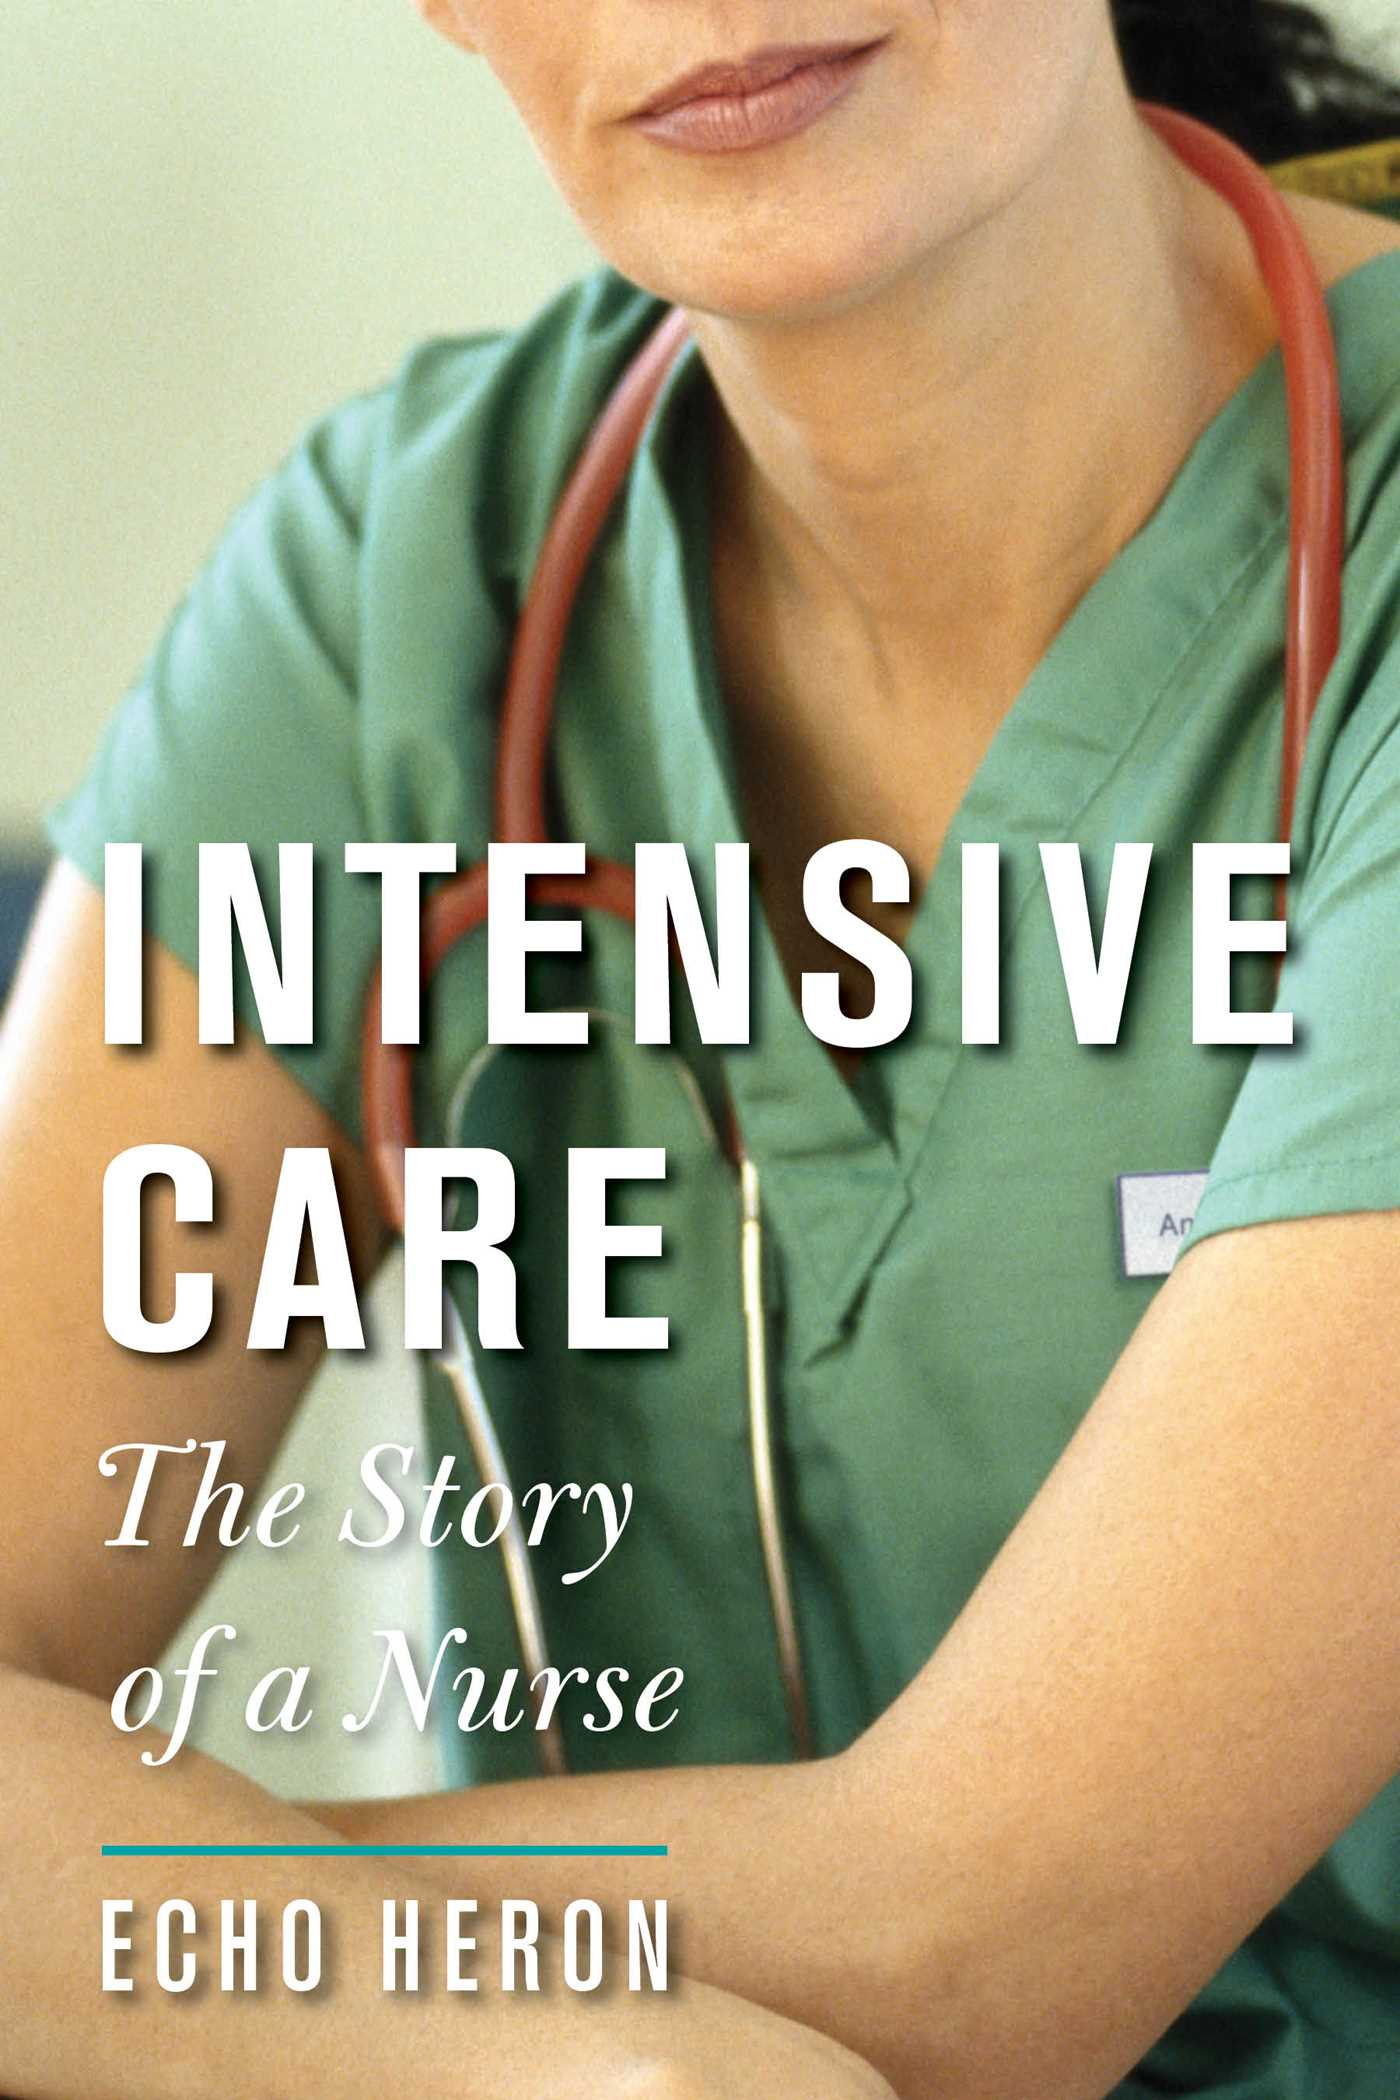 Intensive-care-9781451665567_hr